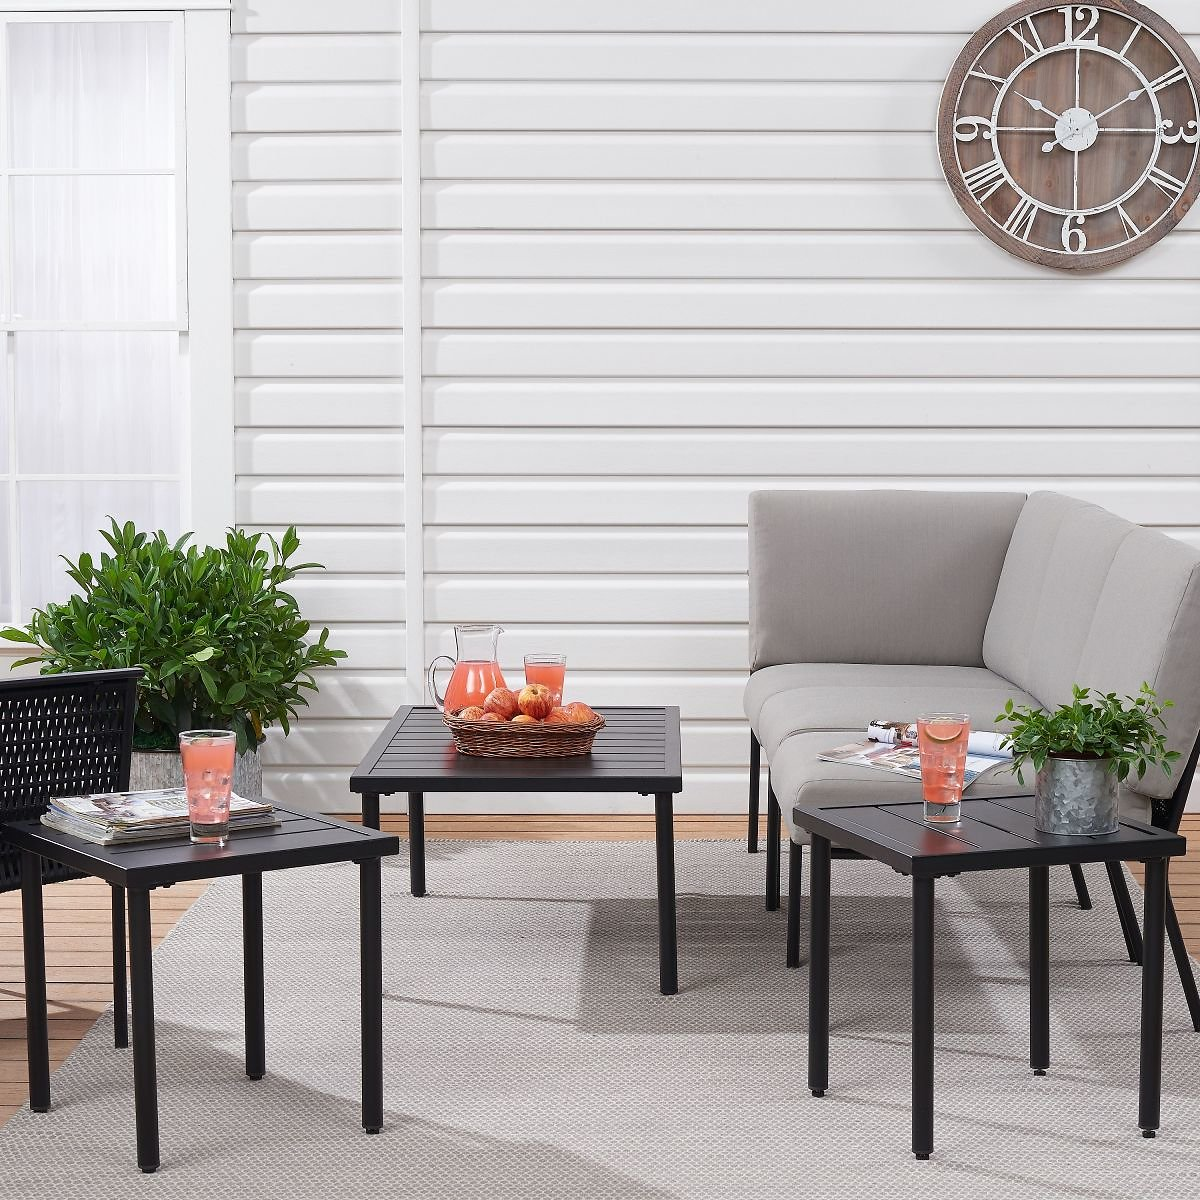 Mainstays Dagna 3-Piece Patio Coffee Table and Side Table Set